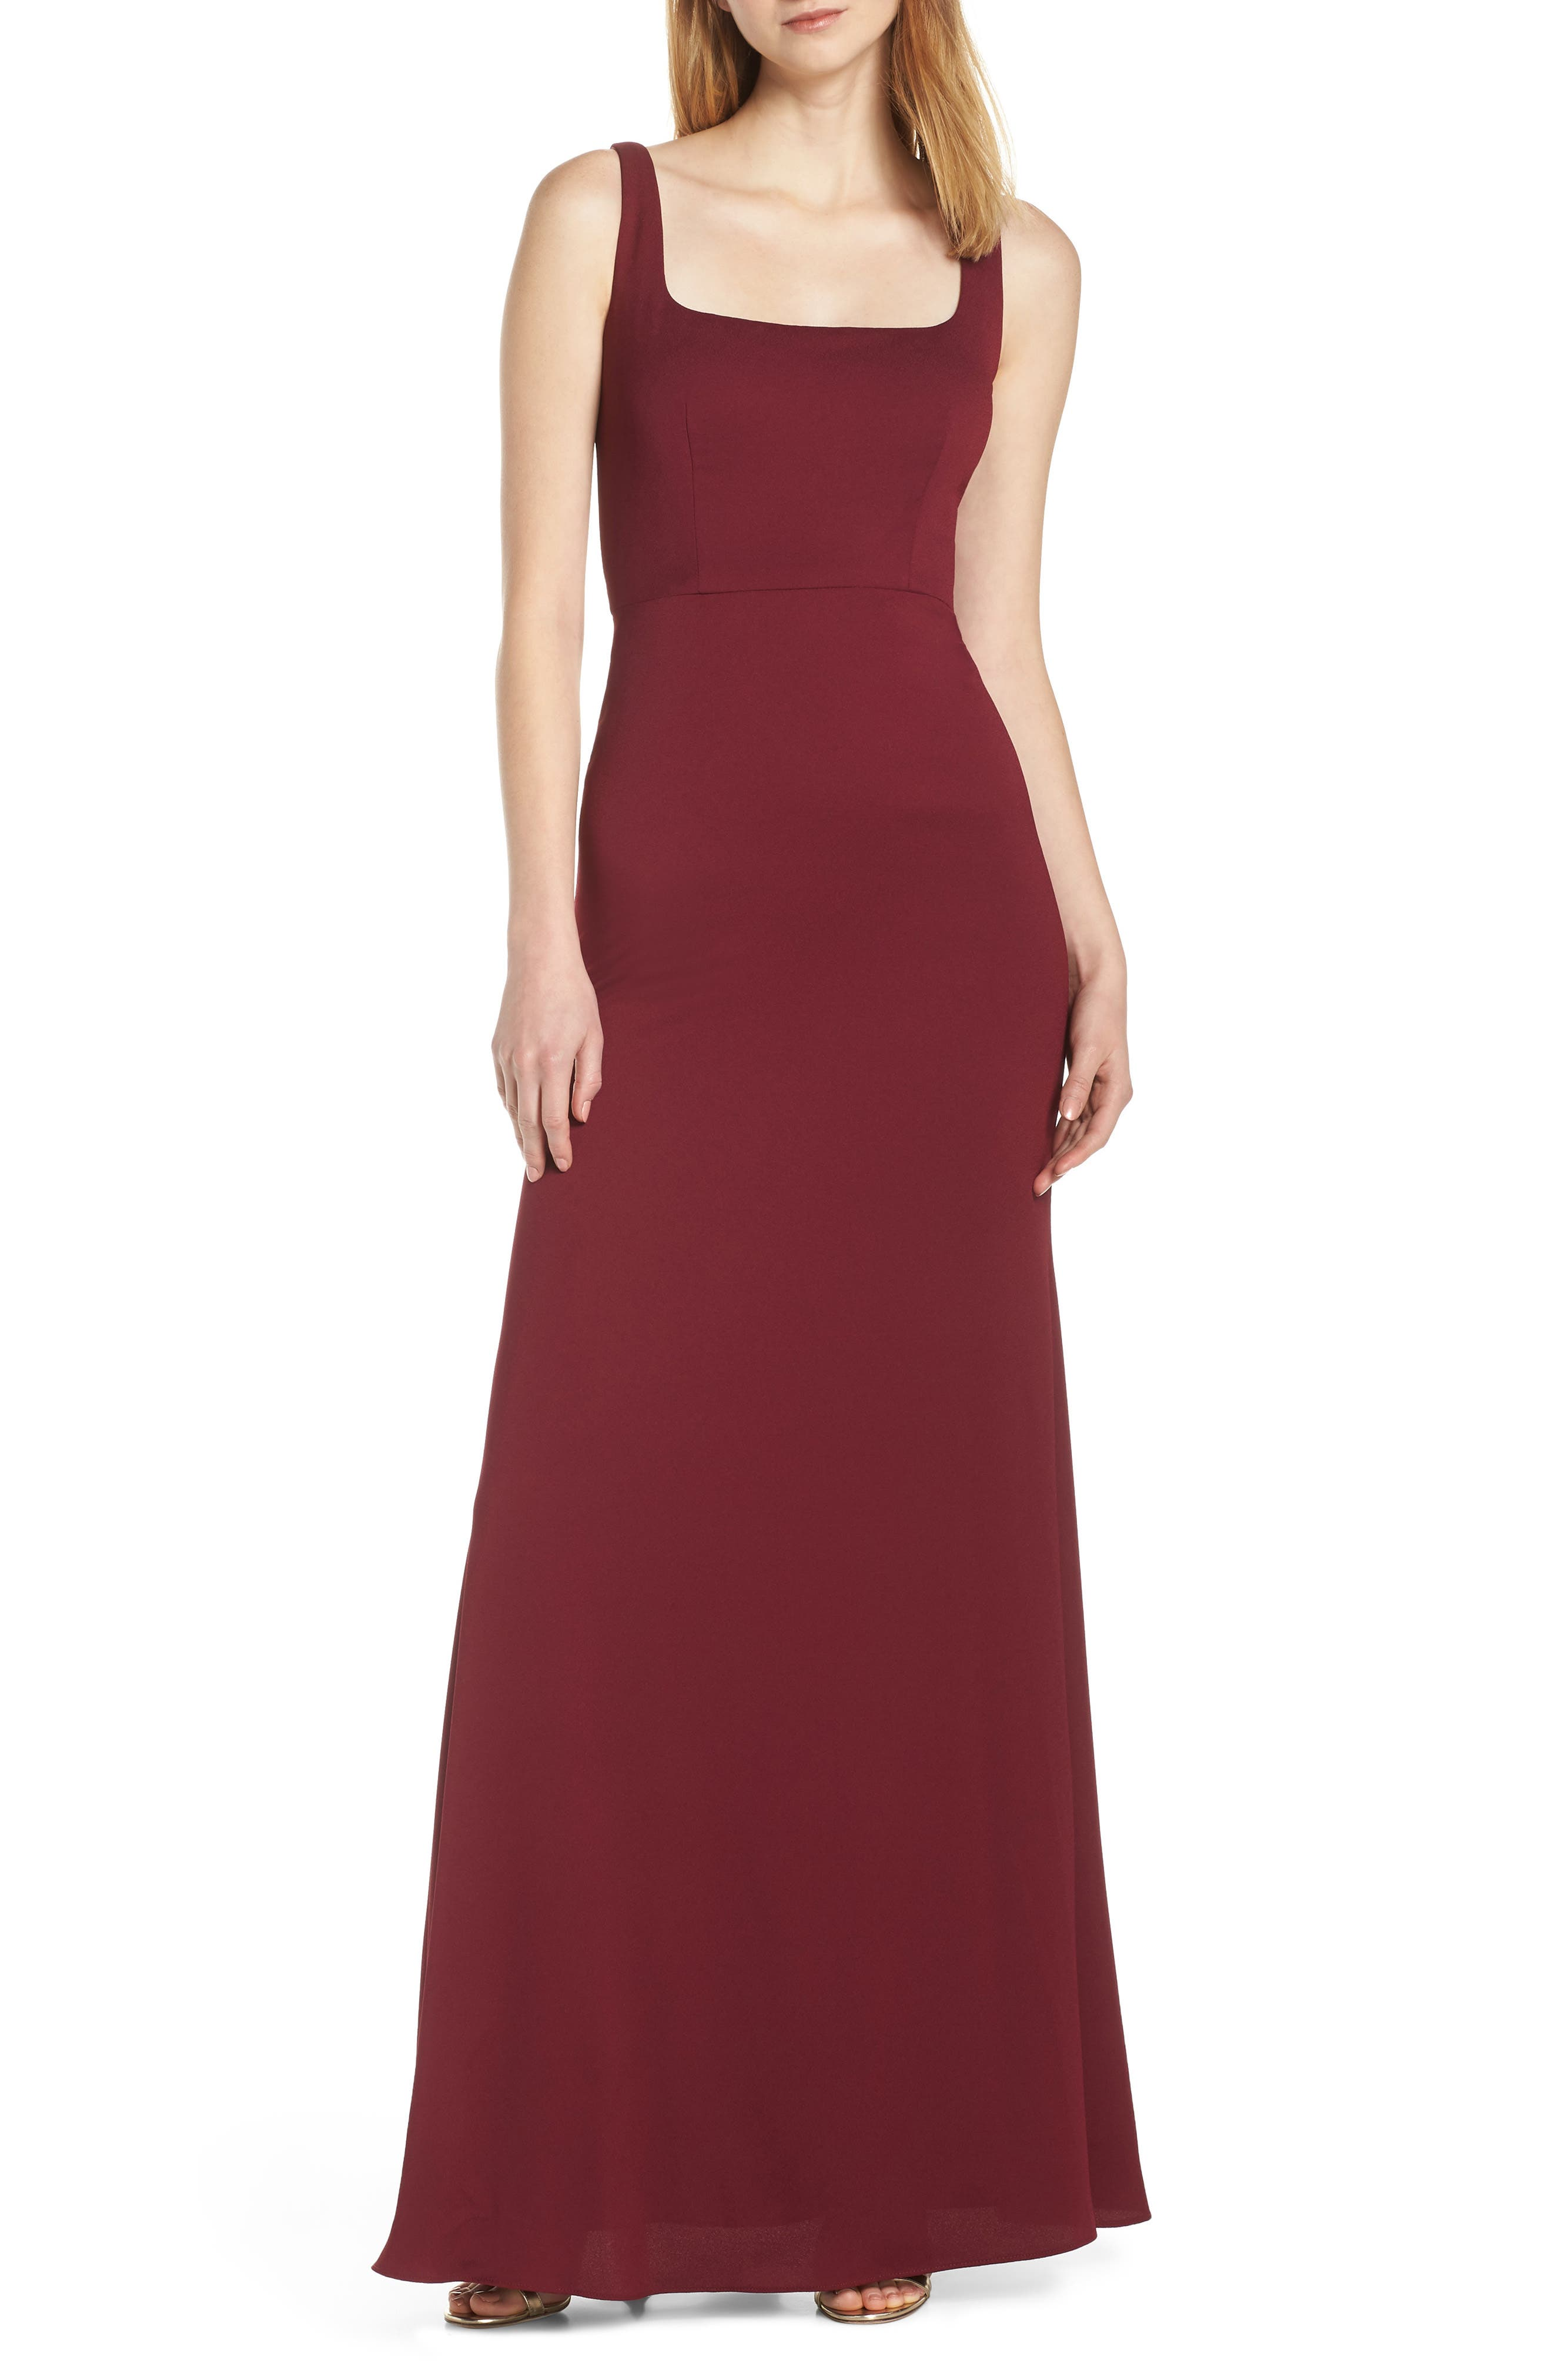 Hayley Paige Occasions Square Neck Tie Back Crepe Evening Dress, Burgundy